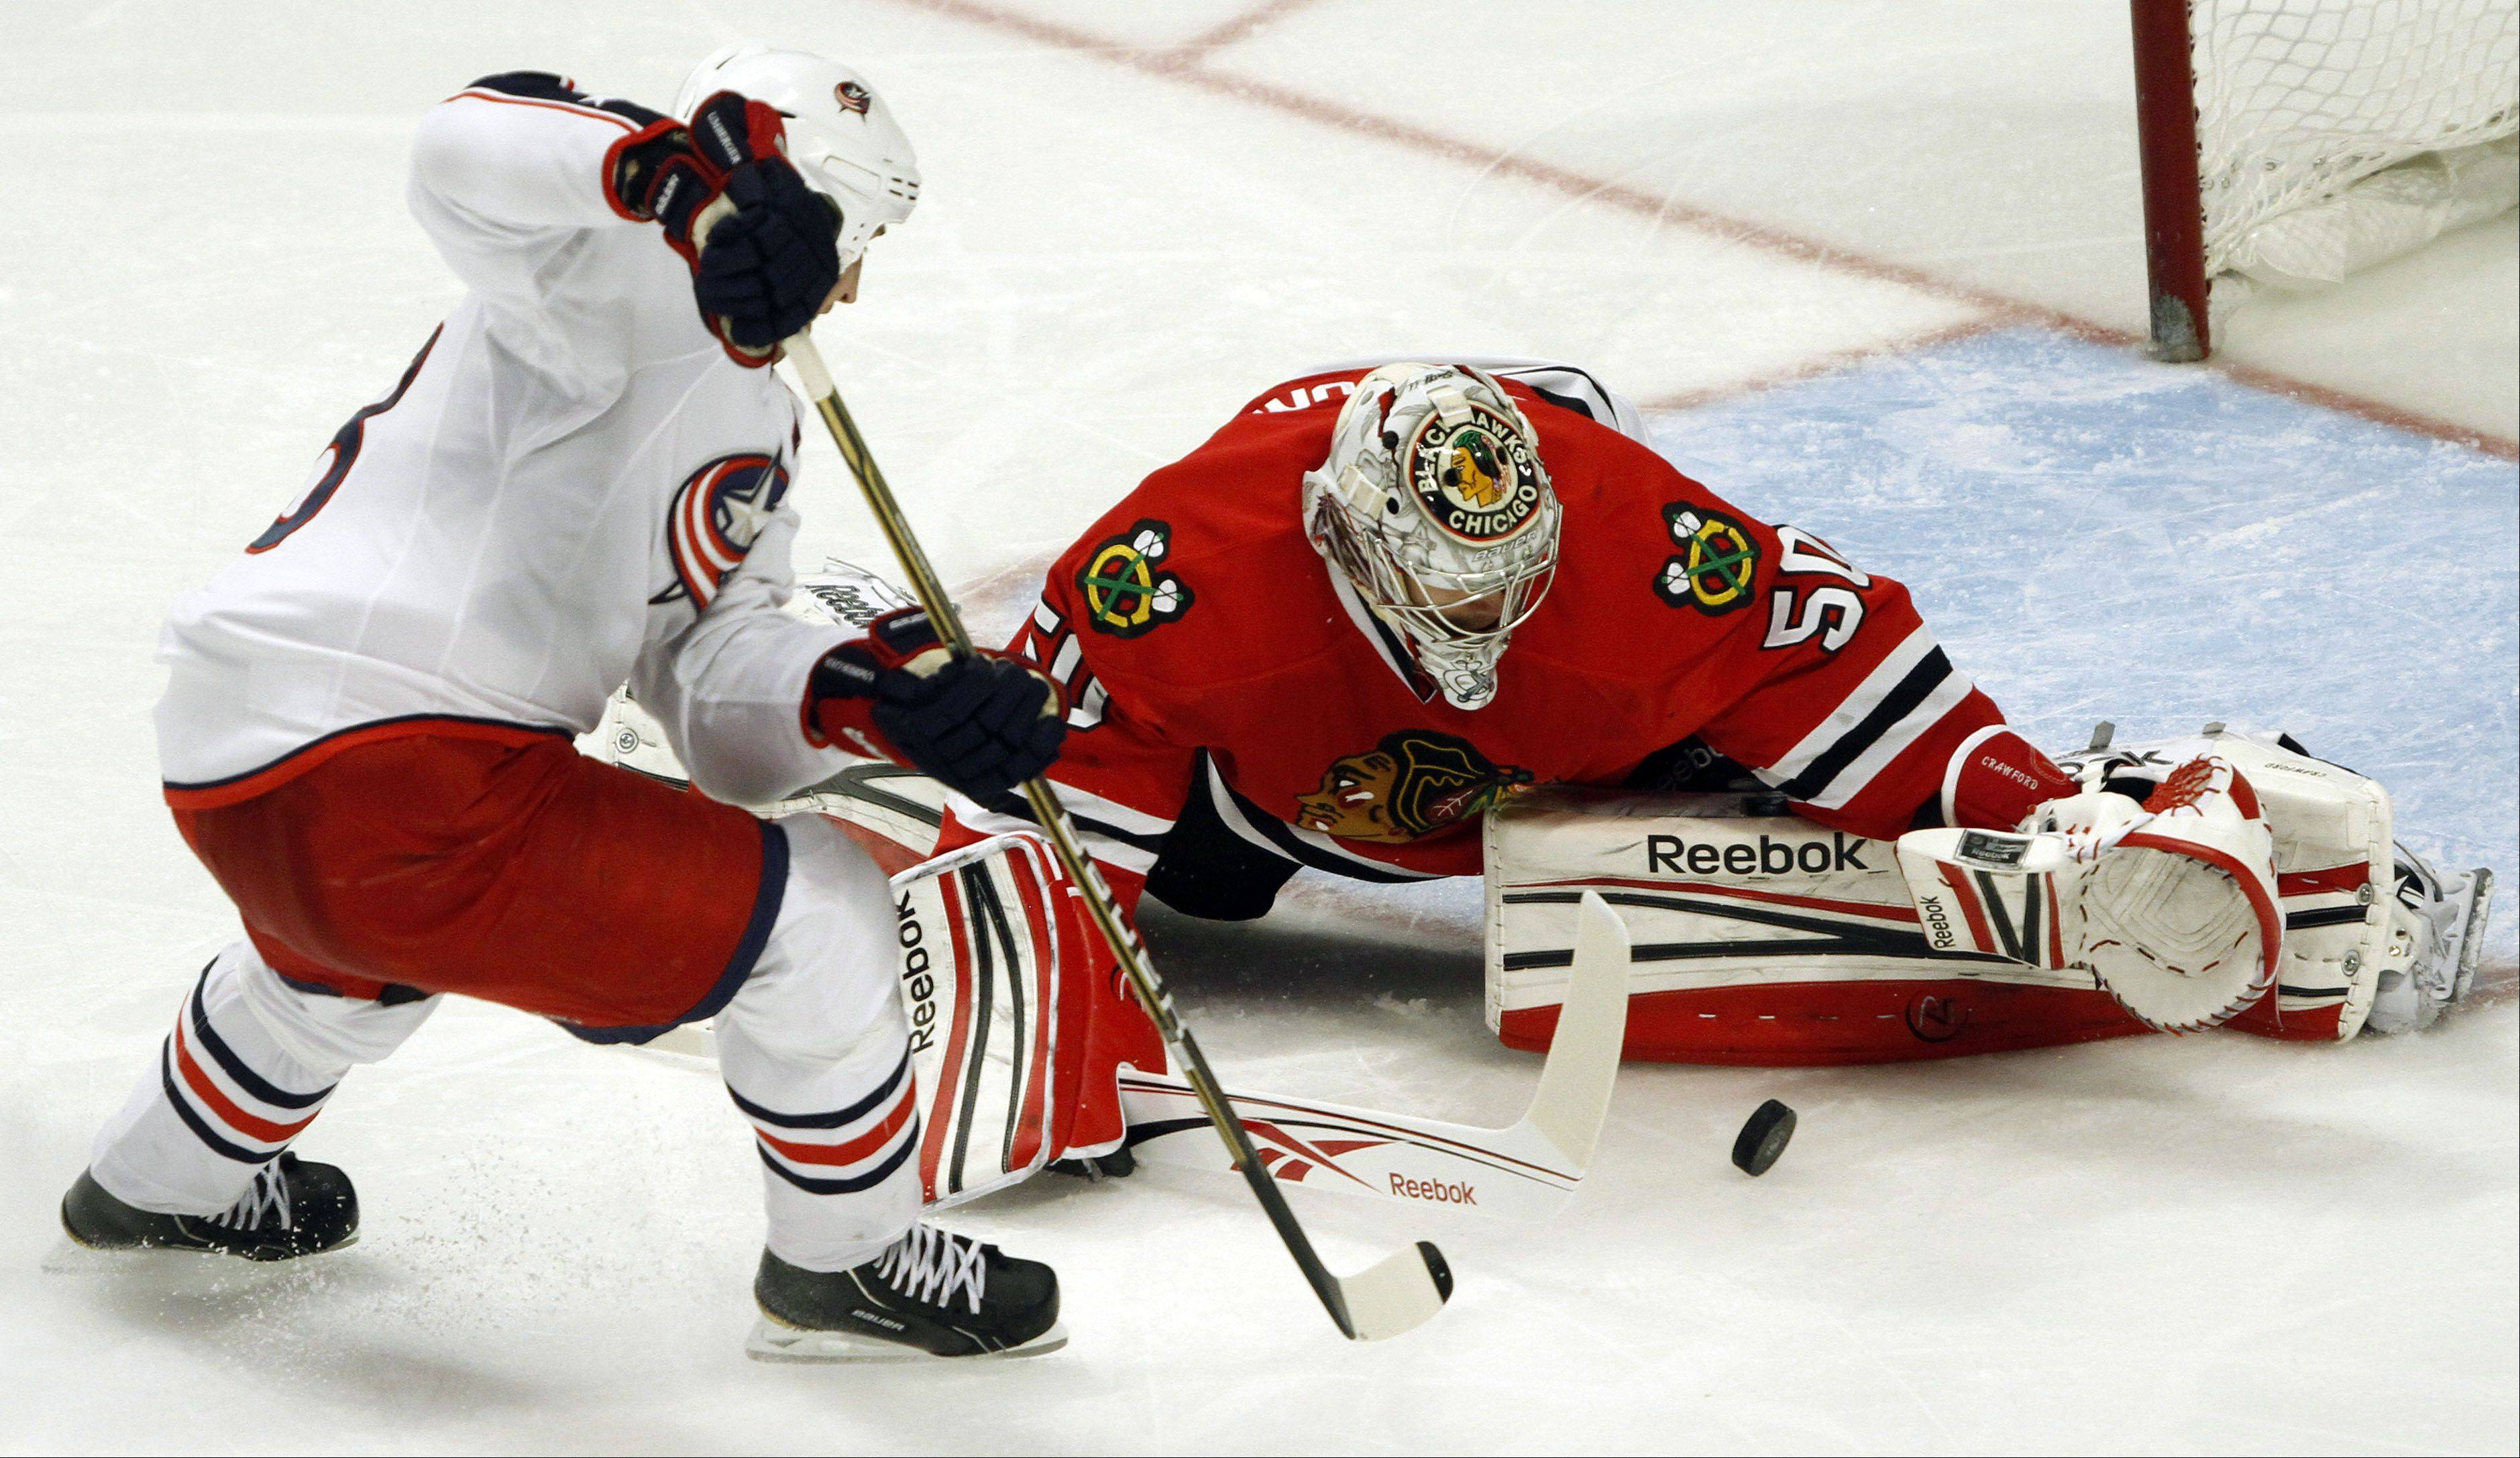 Blackhawks goalie Corey Crawford makes a save on the Blue Jackets' R.J. Umberger in the third period Monday night at the United Center in Chicago.